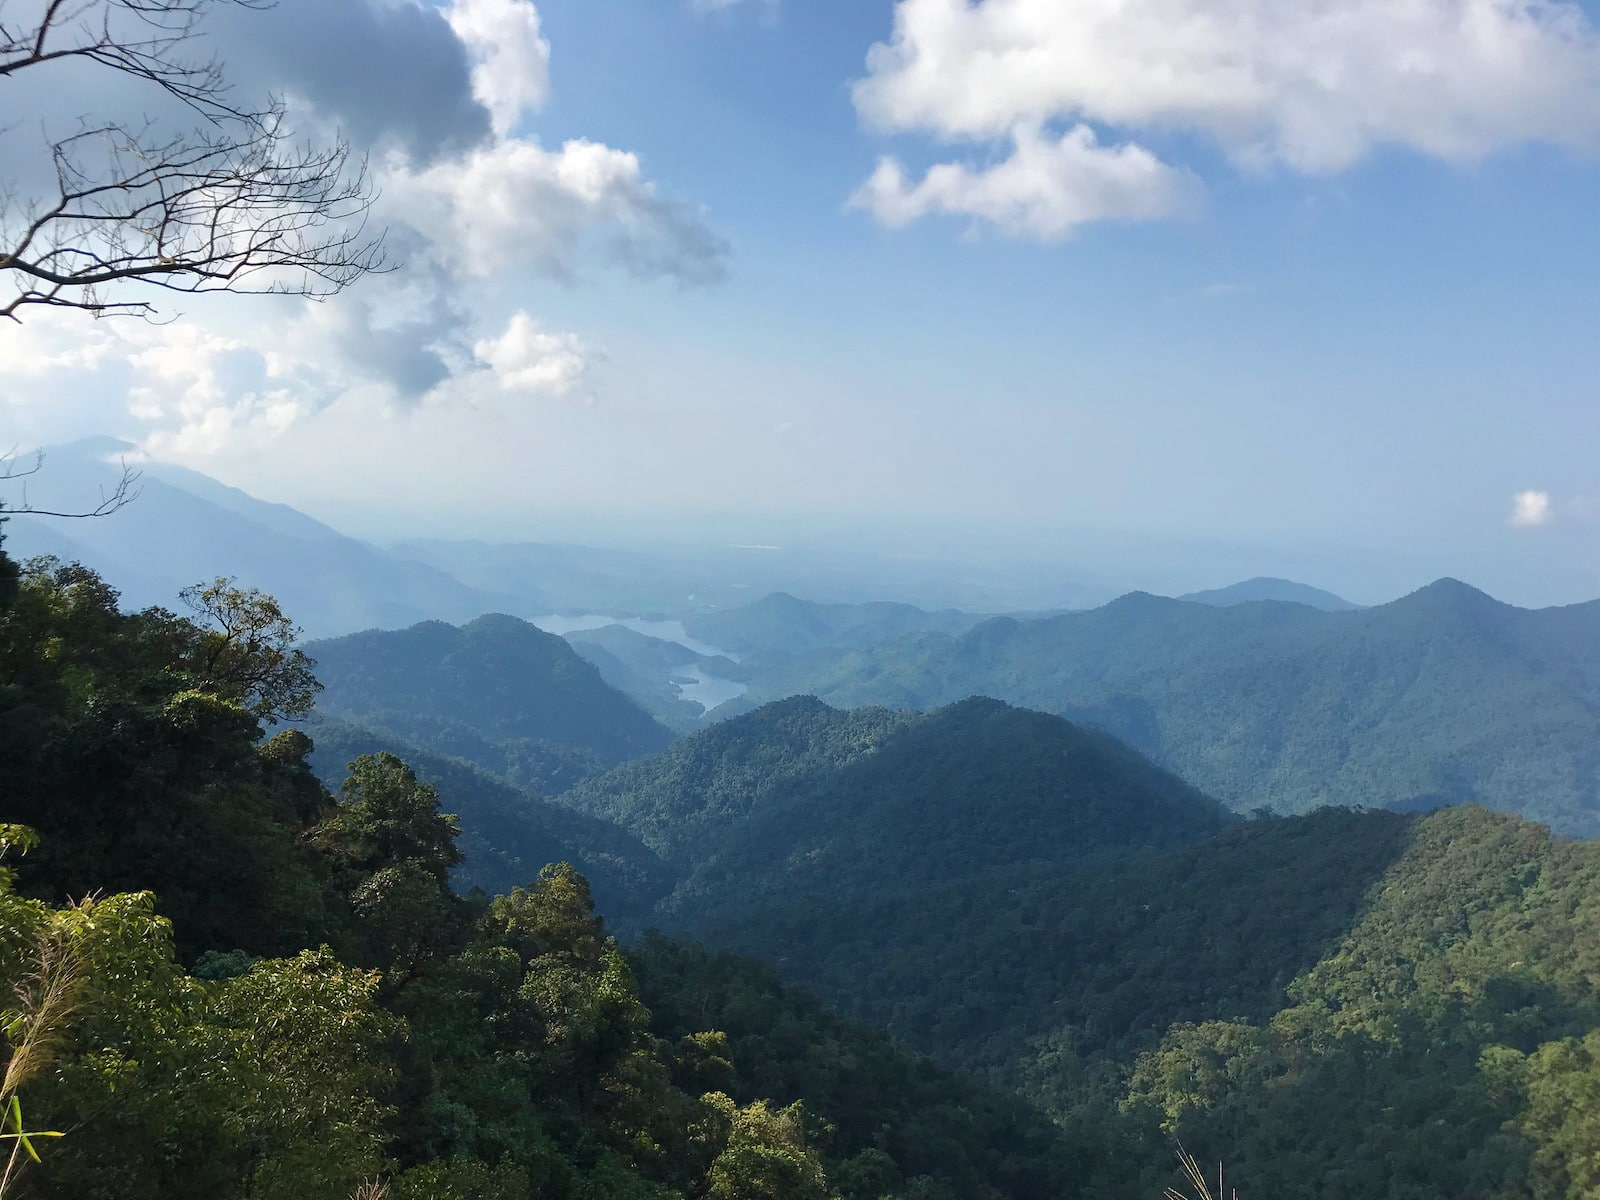 Image of rolling mountains in Bach Ma National Park in Hue, Vietnam